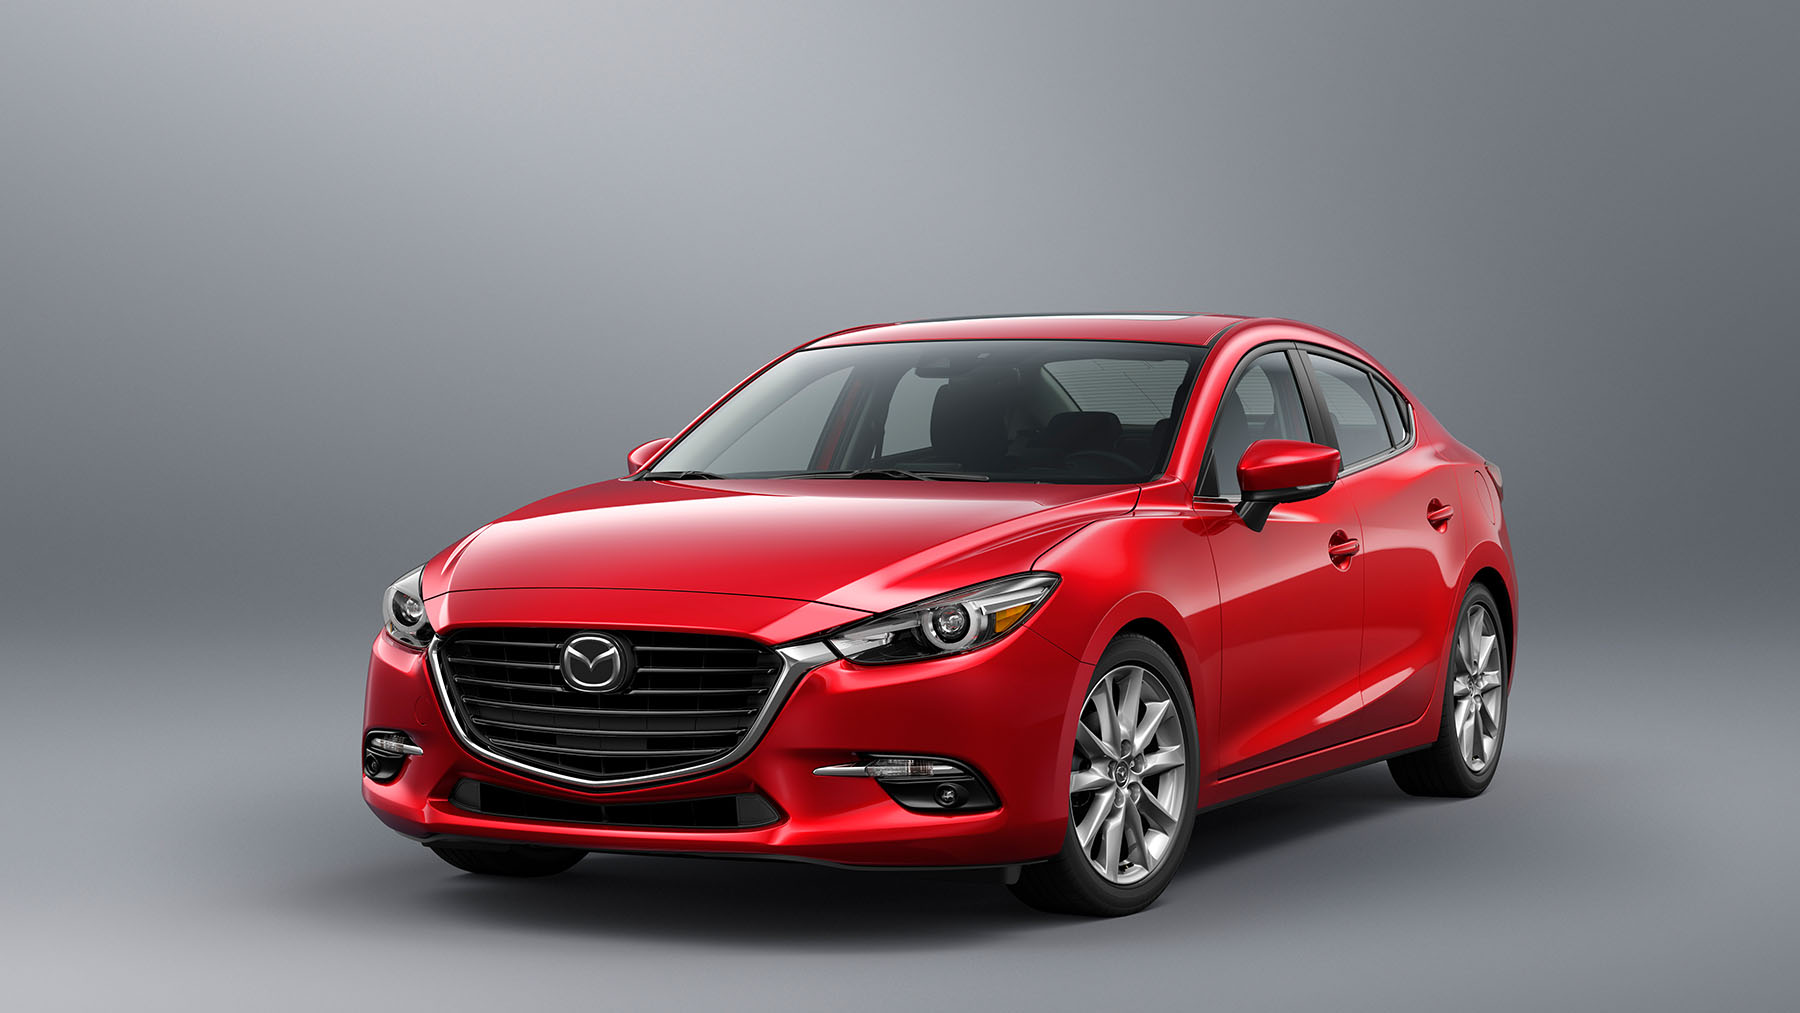 mazda 3 2018 sed n en m xico color rojo fondo gris autos actual m xico. Black Bedroom Furniture Sets. Home Design Ideas